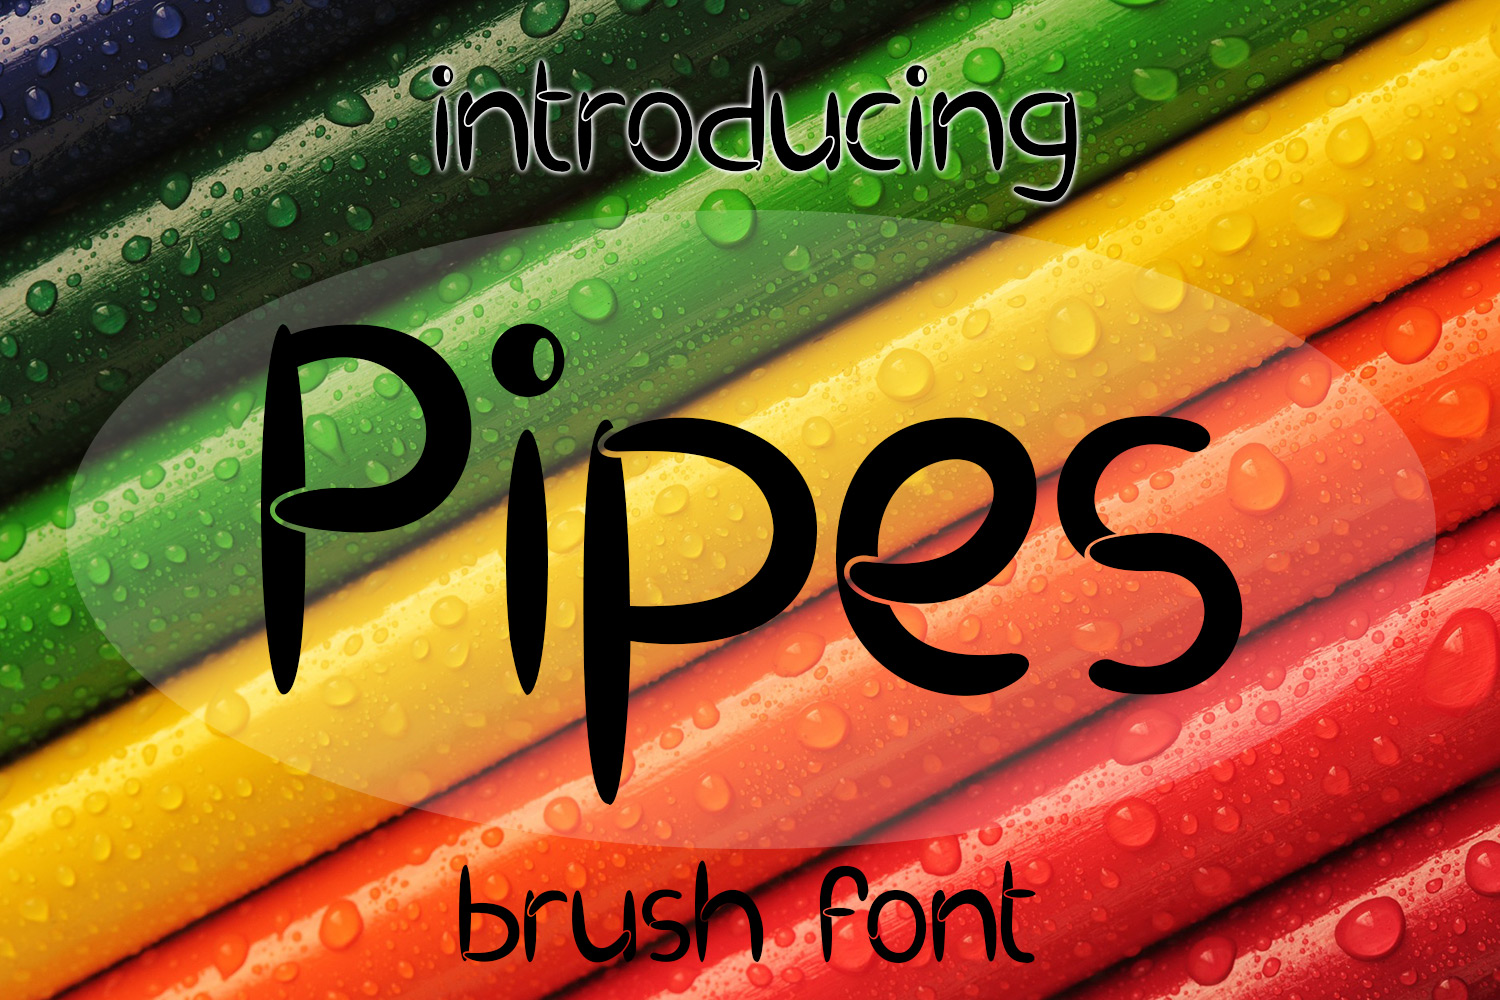 EP Pipes - Brush Font example image 1